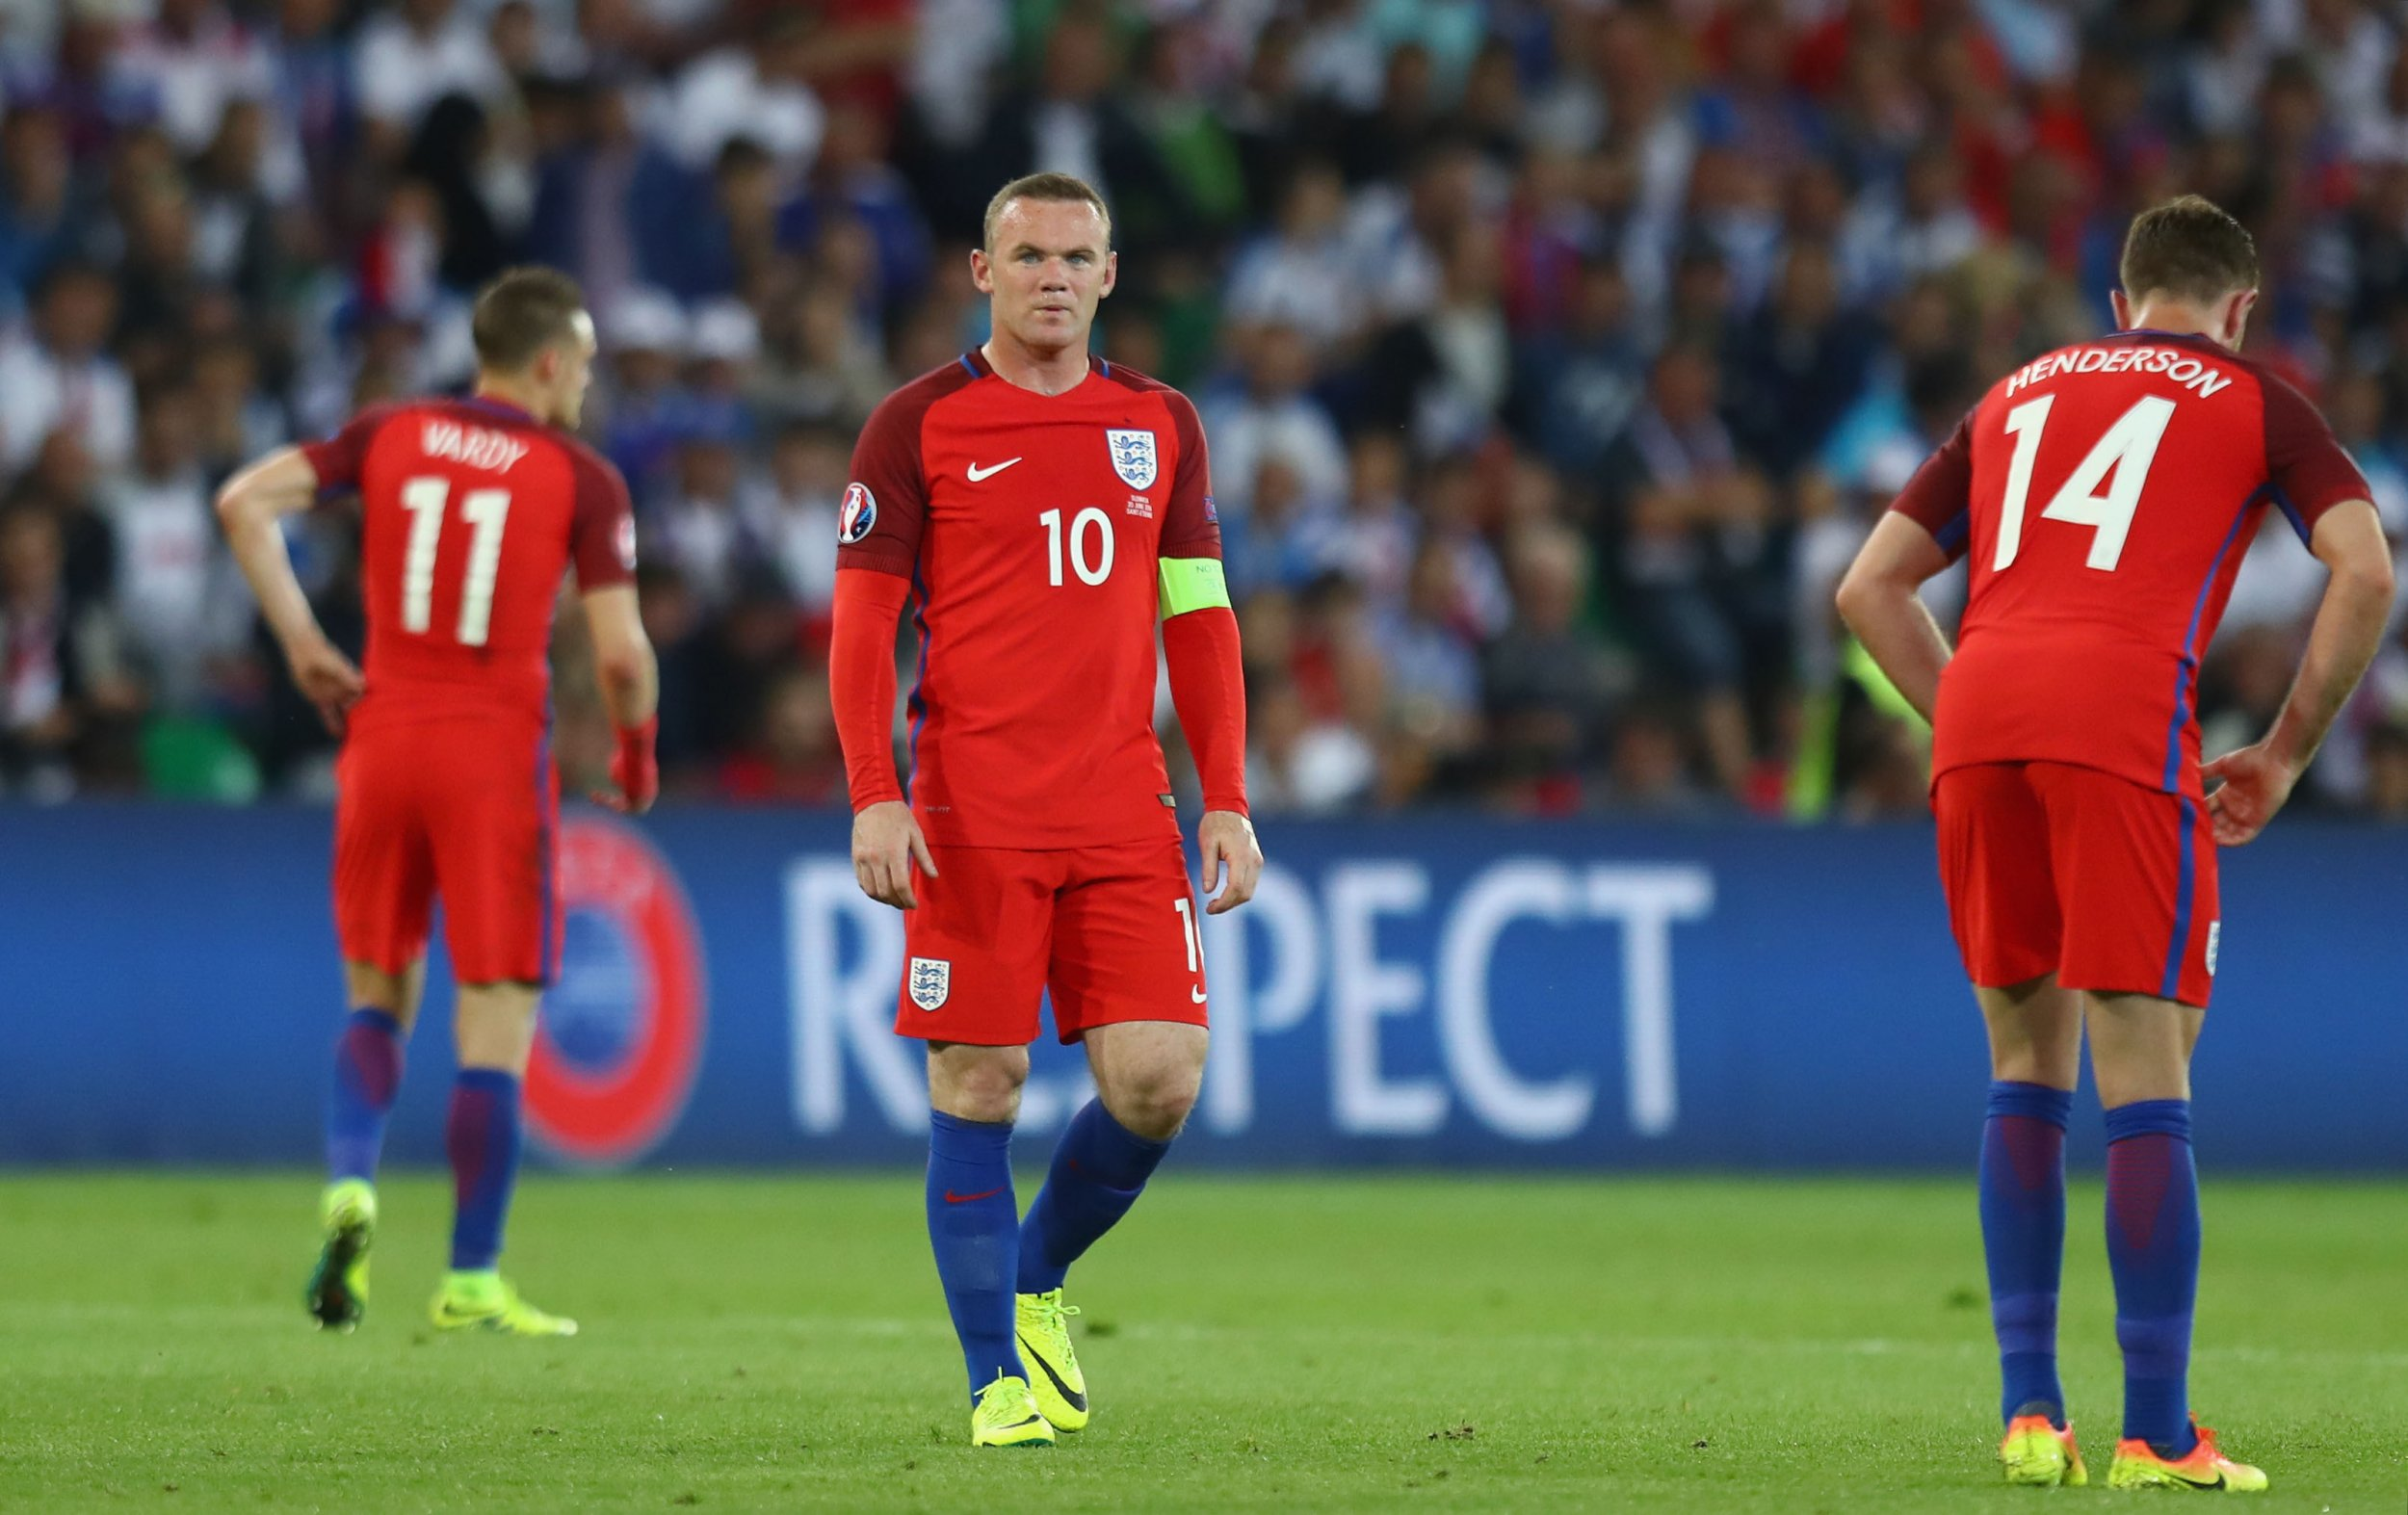 England 0, Slovakia 0: What We Learned From Goalless Draw